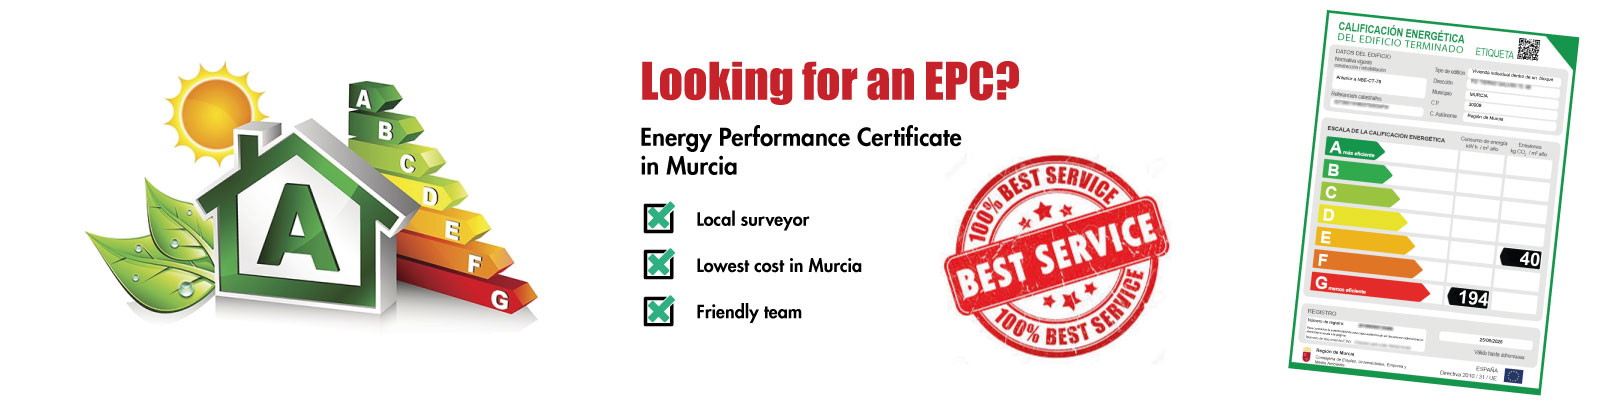 energy performance certificate in Murcia